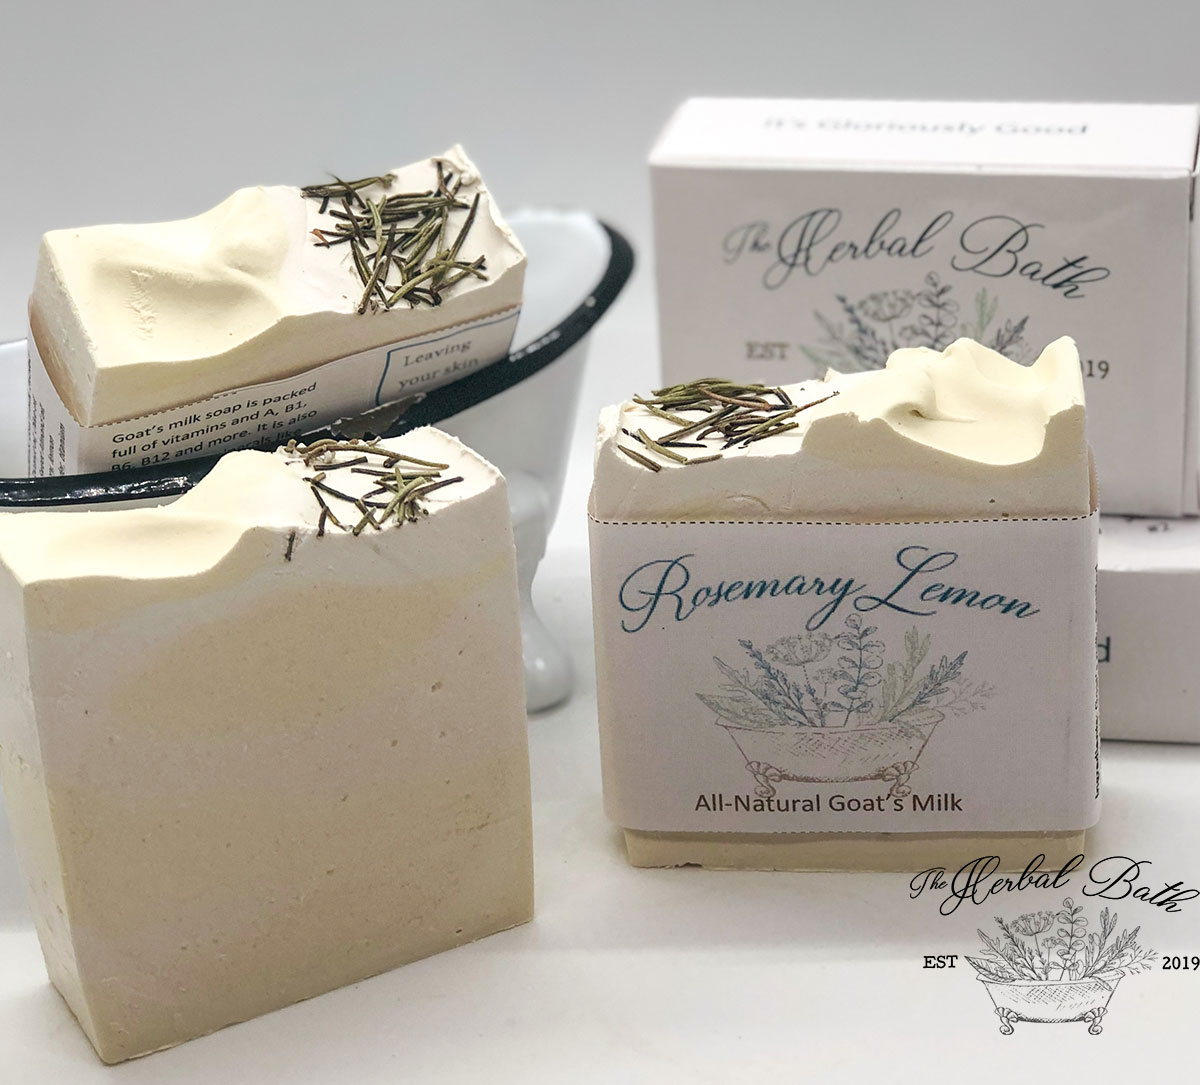 Rosemary Lemon Bliss soap